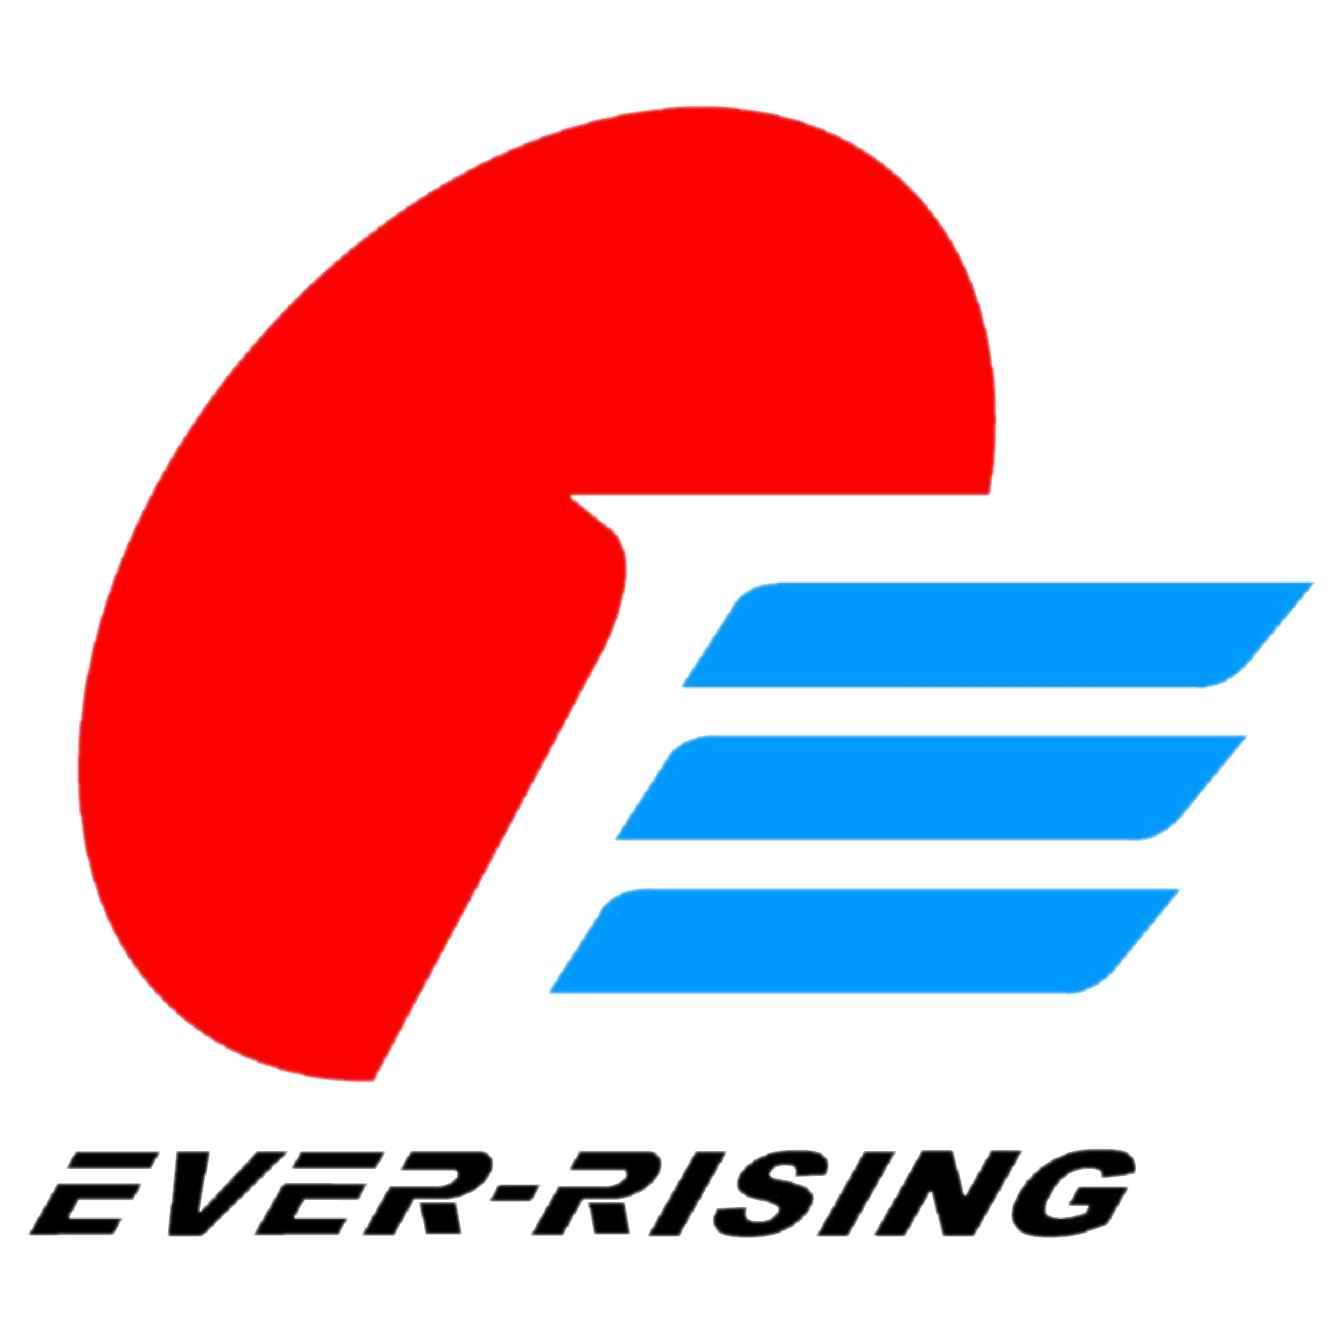 Ever-rising Stone(Xiamen) Co., Ltd. logo